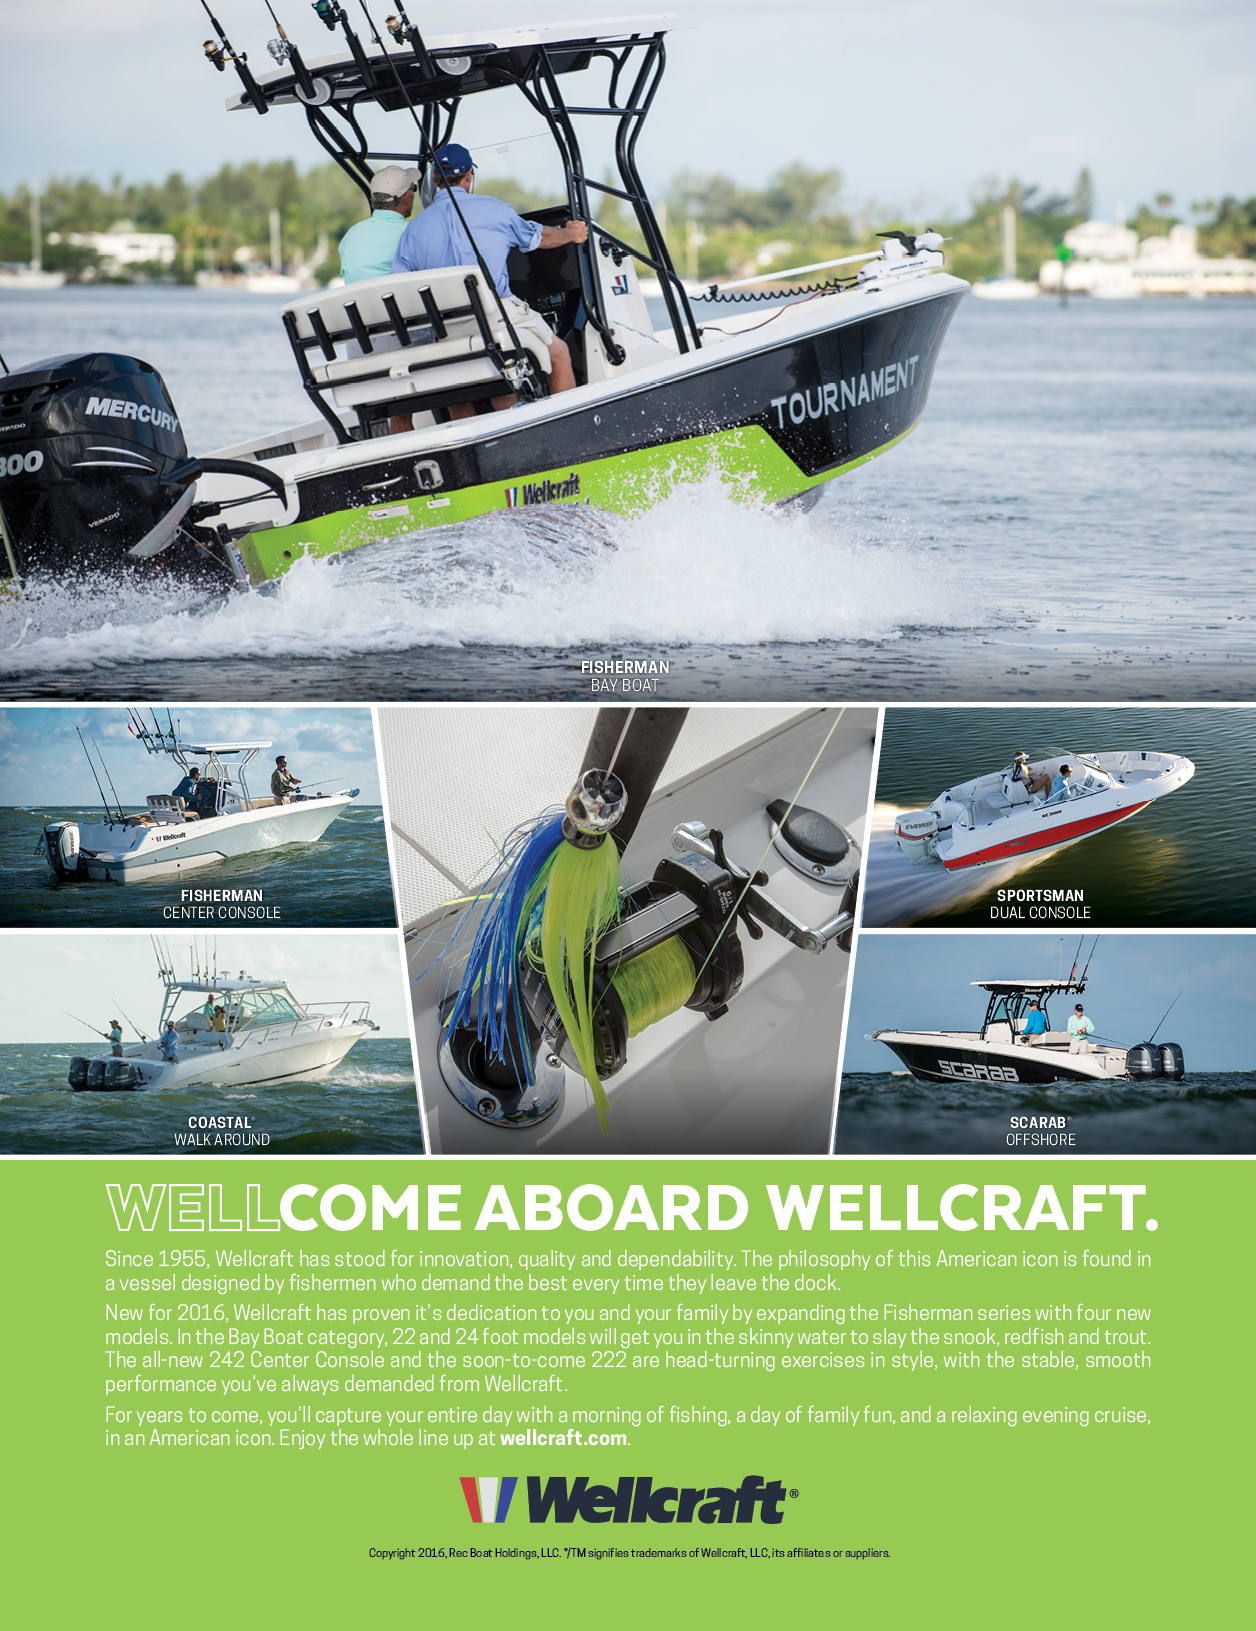 Wellcraft Boats